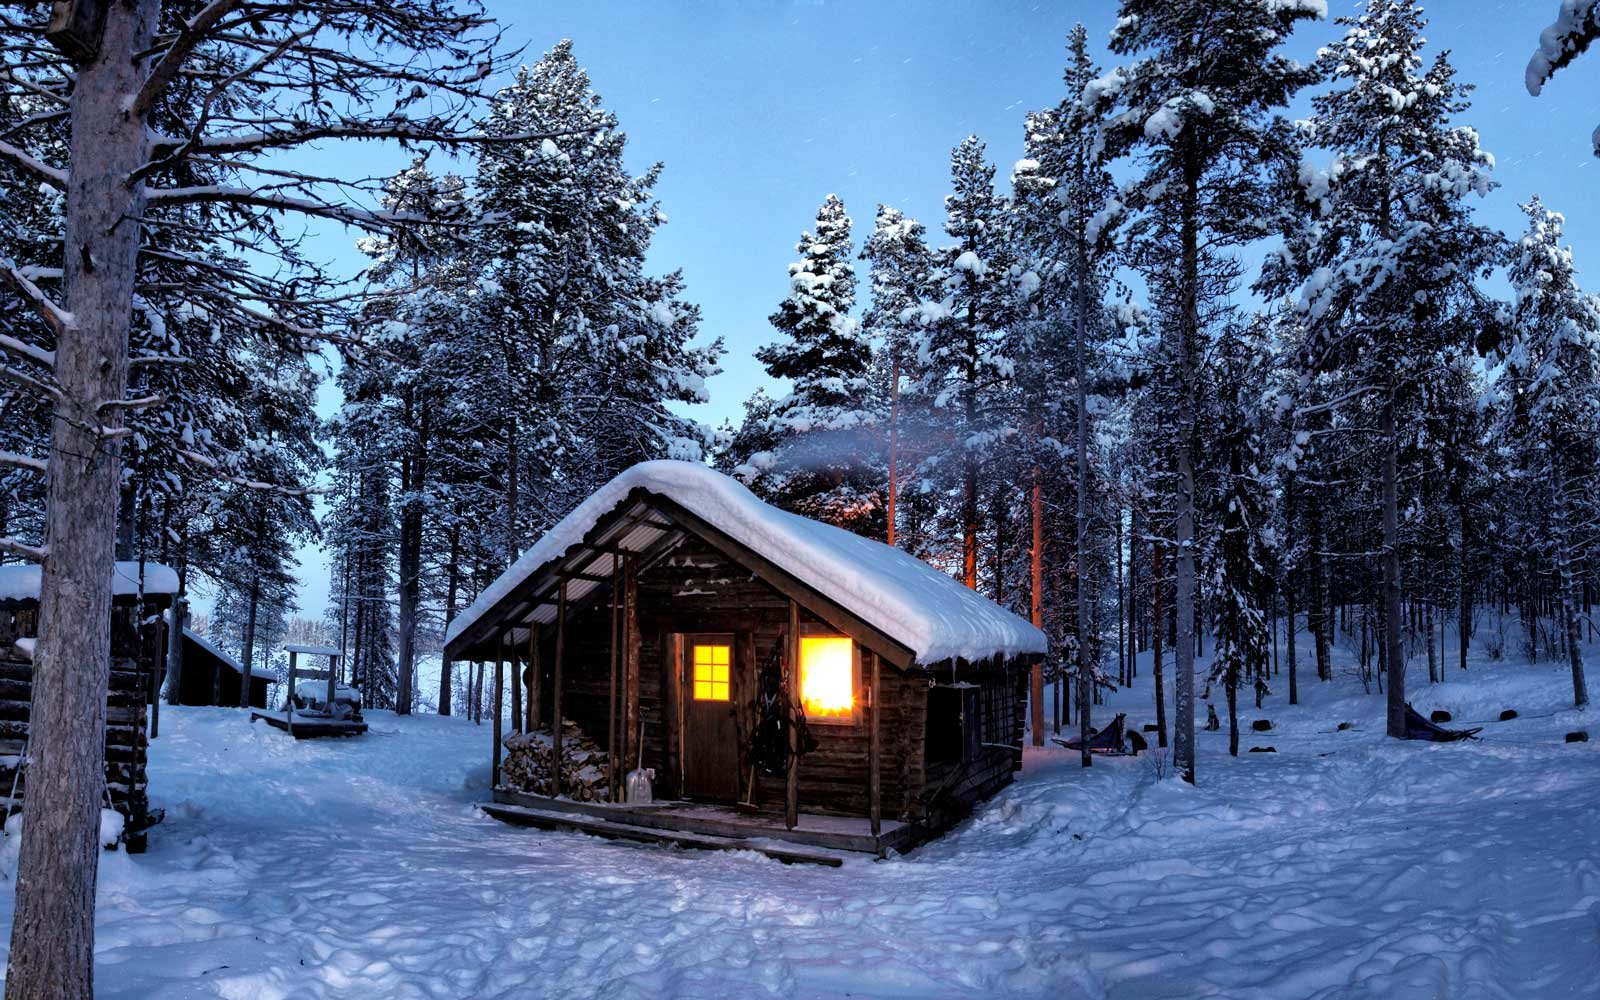 A cabin in the snowy forest near Kiruna, Sweden